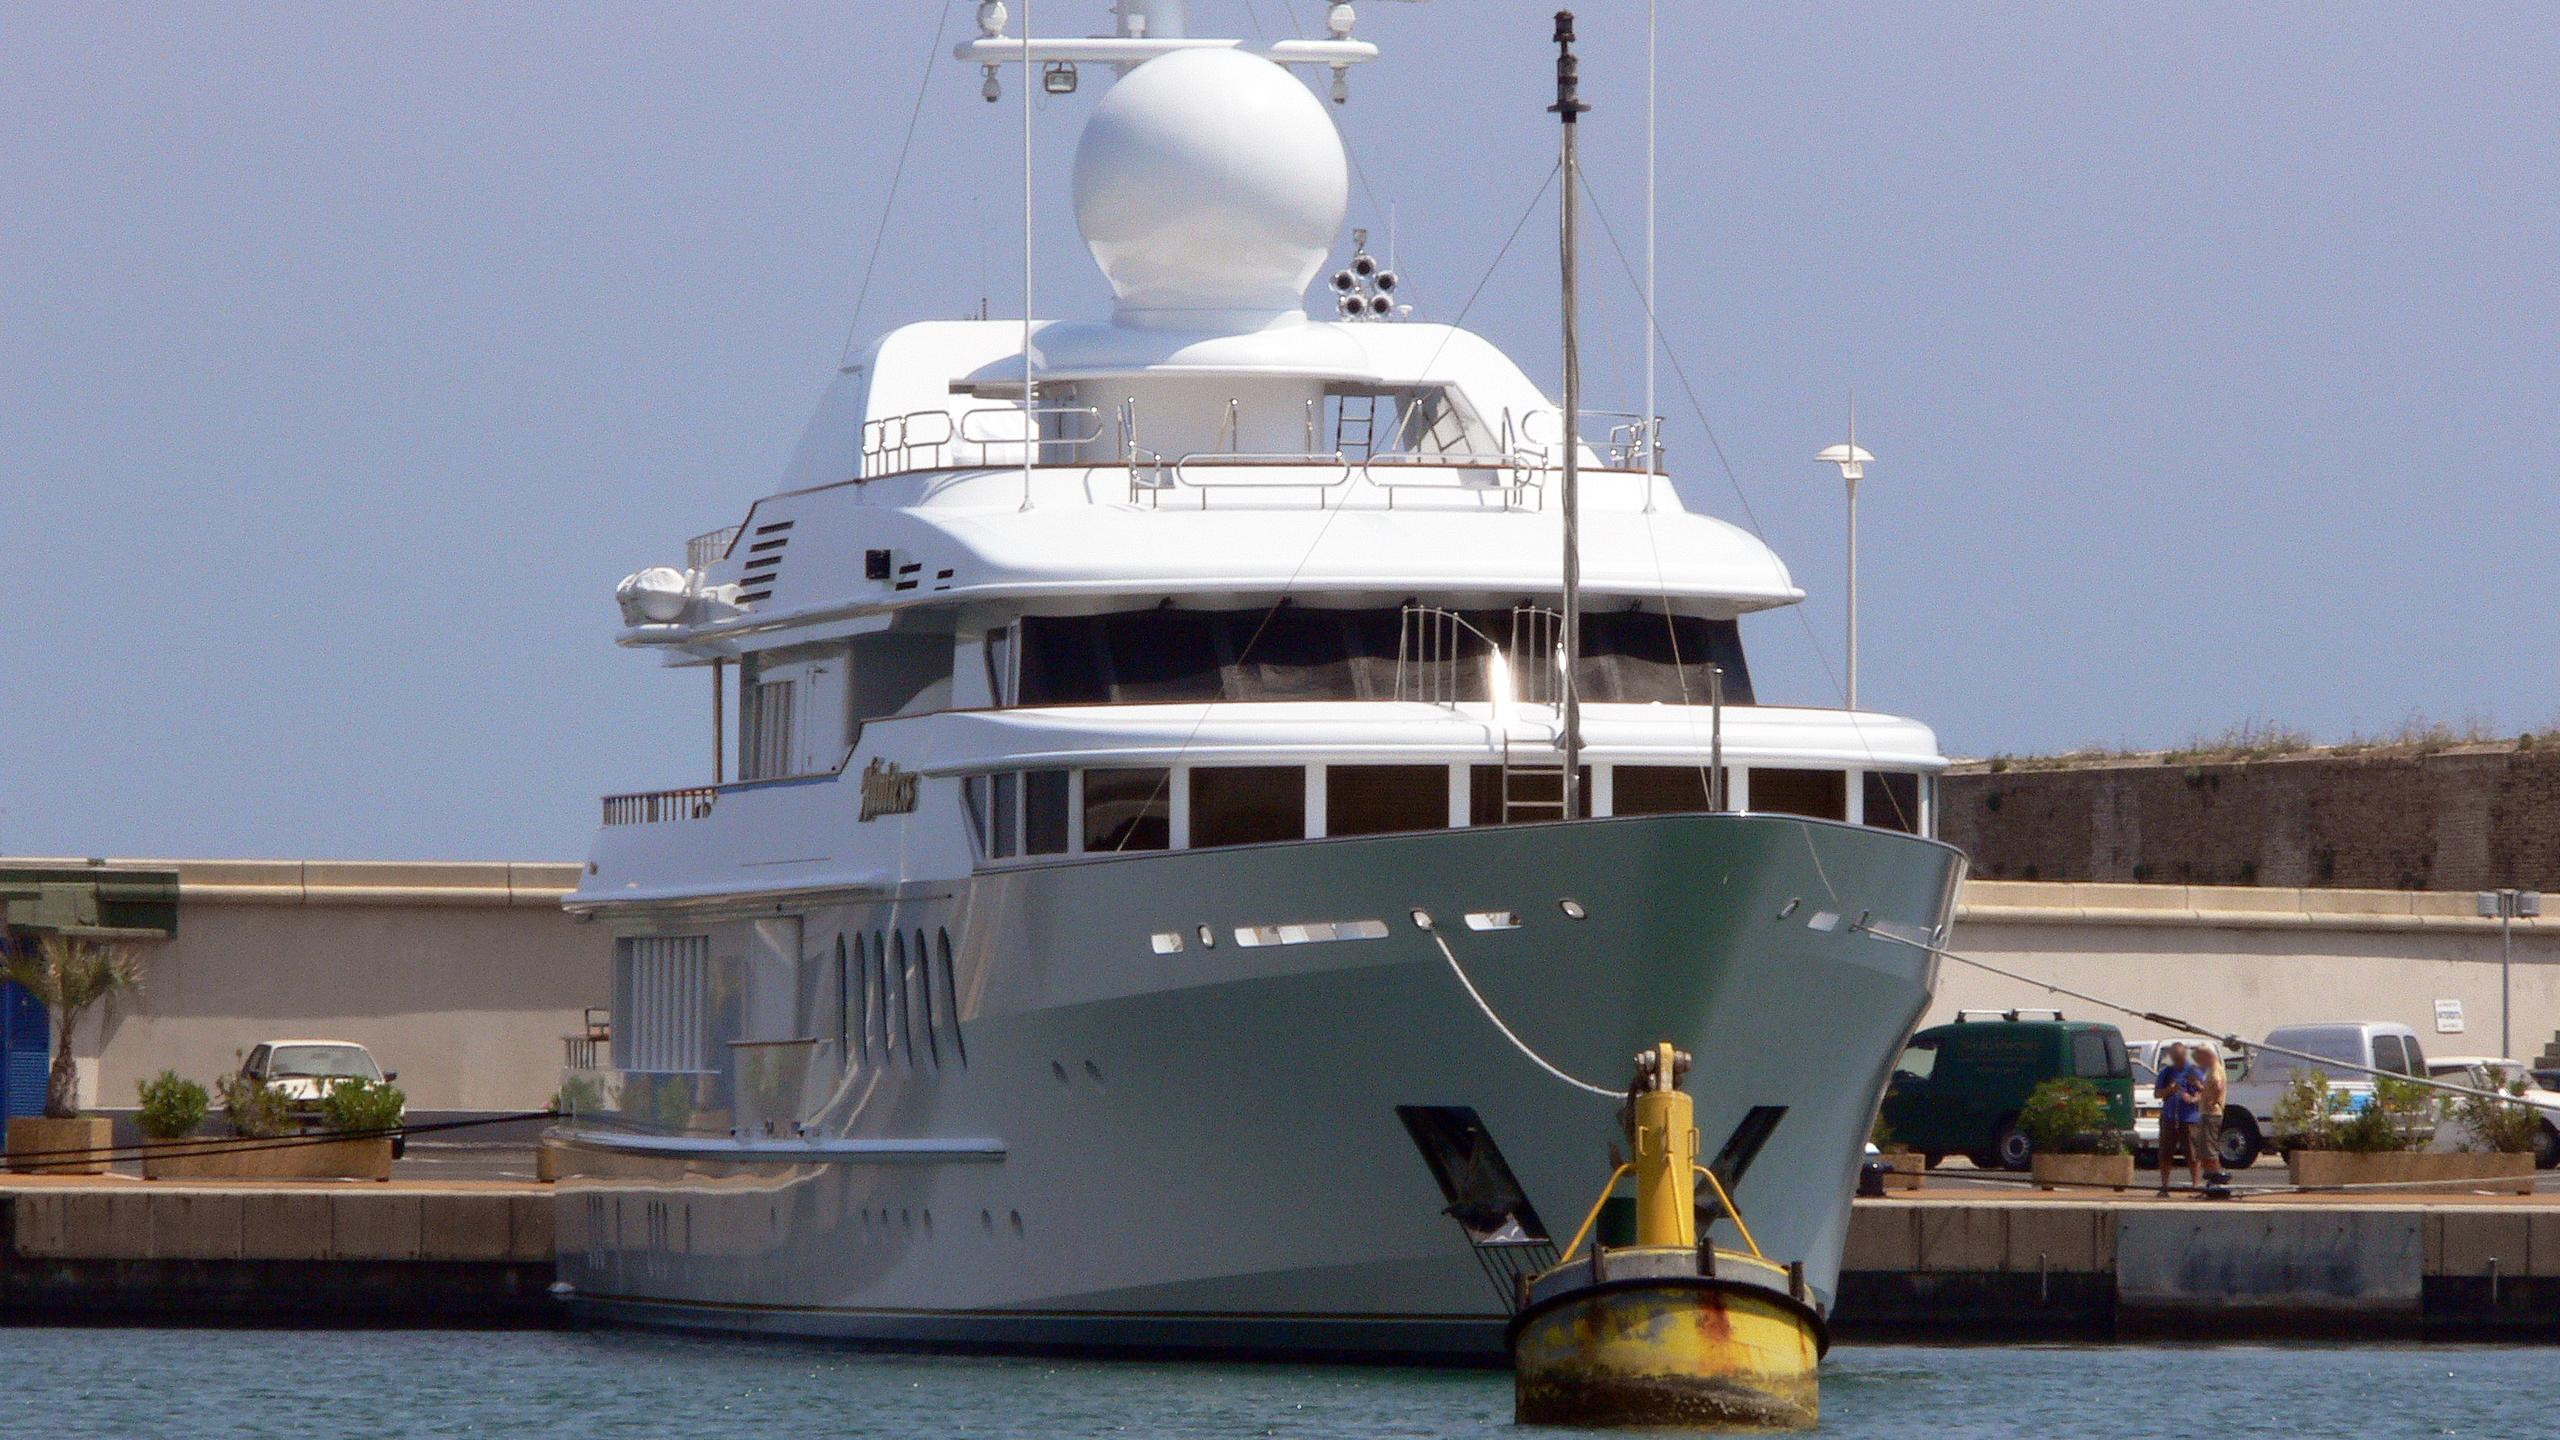 sea-huntress-huntress-motor-yacht-feadship-1997-55m-bow